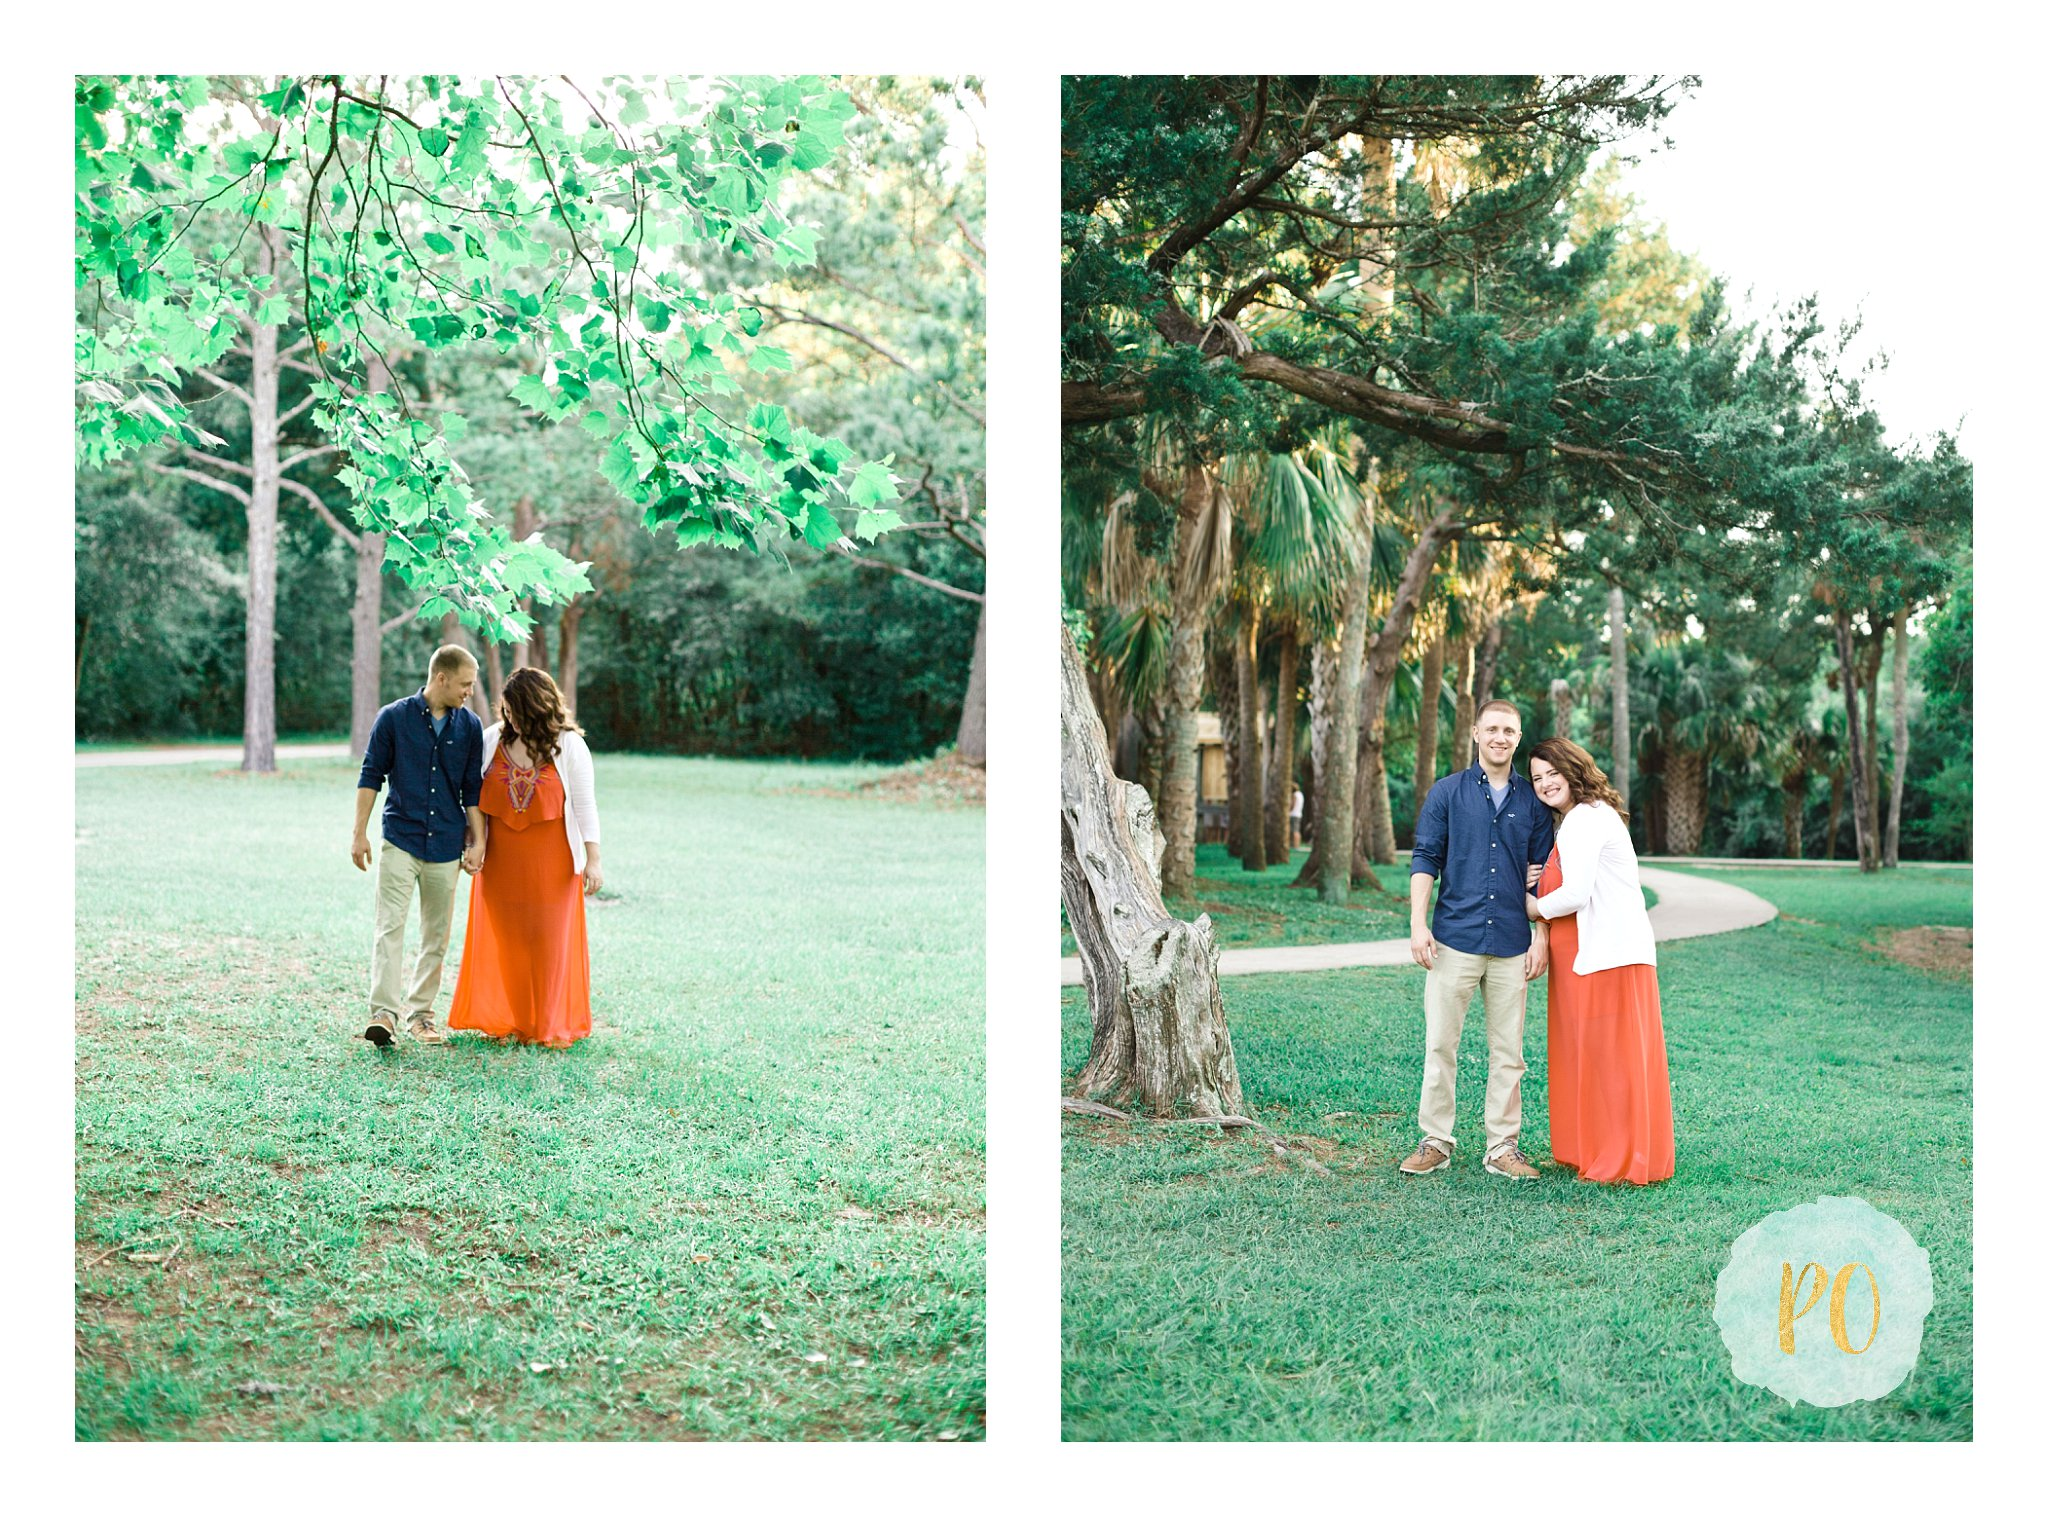 huntington-beach-state-park-engagement-murrells-inlet-sc-photos_0039.jpg